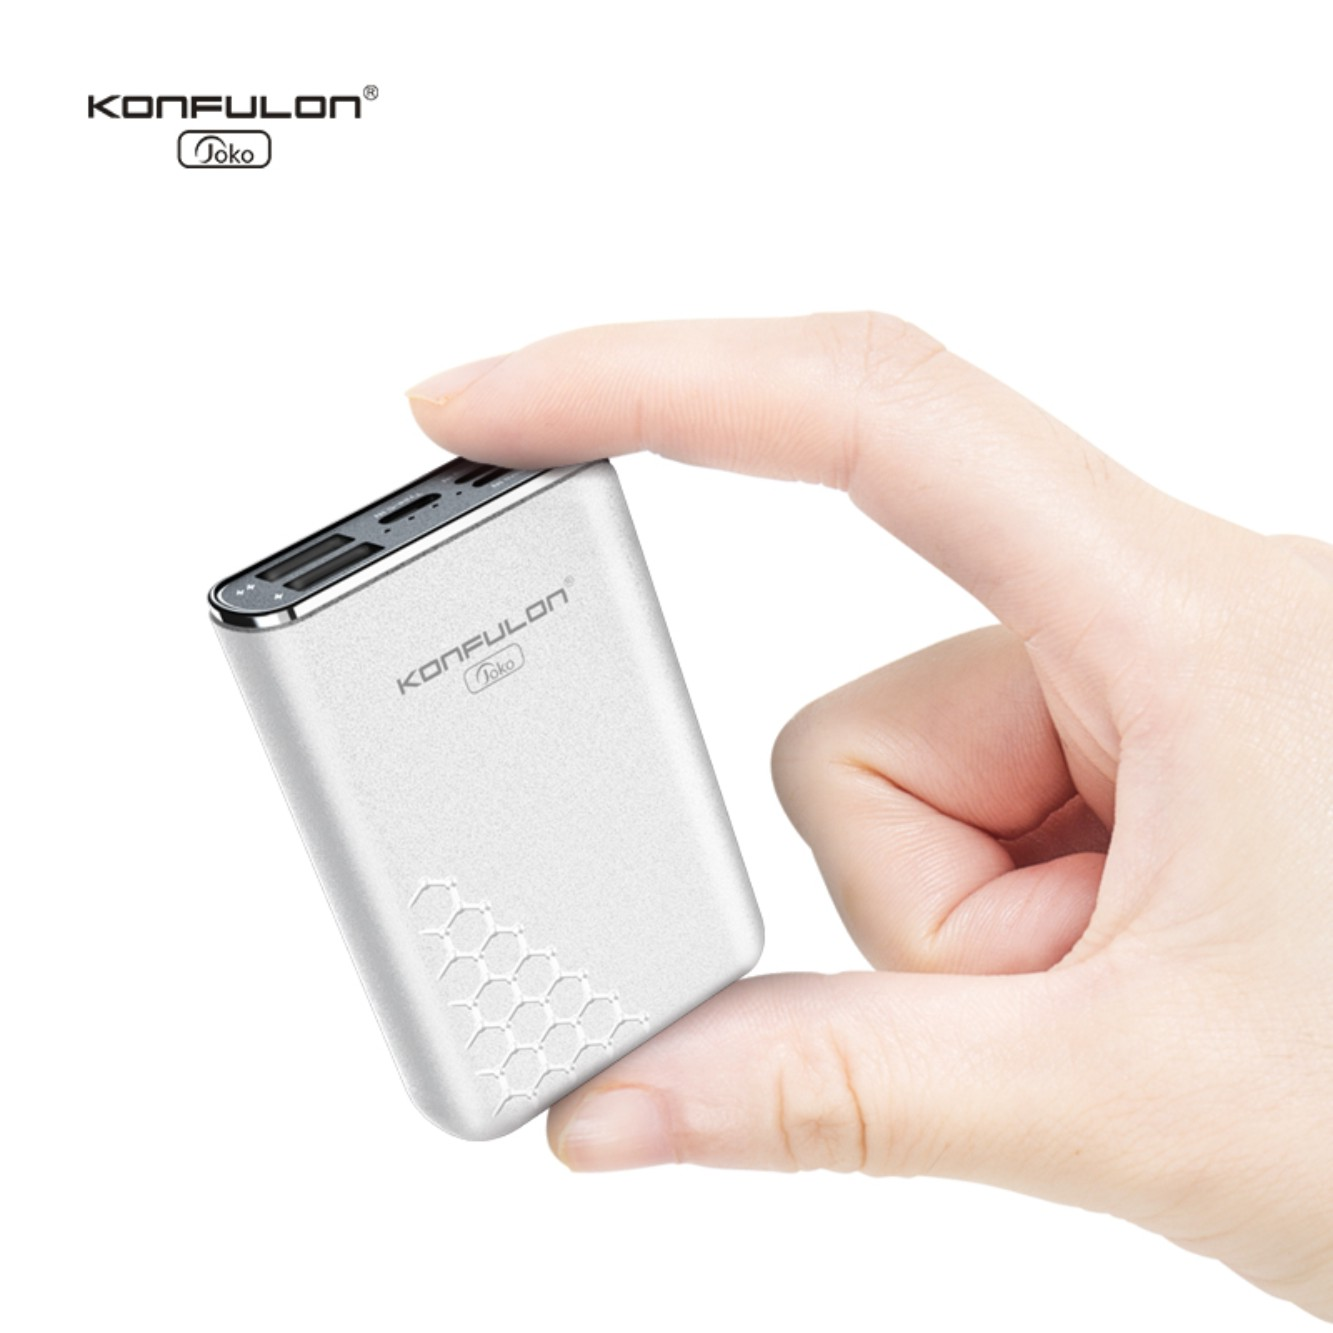 Konfulon High Capacity Small Size Power Bank 10000mah Best Portable External Battery Charger